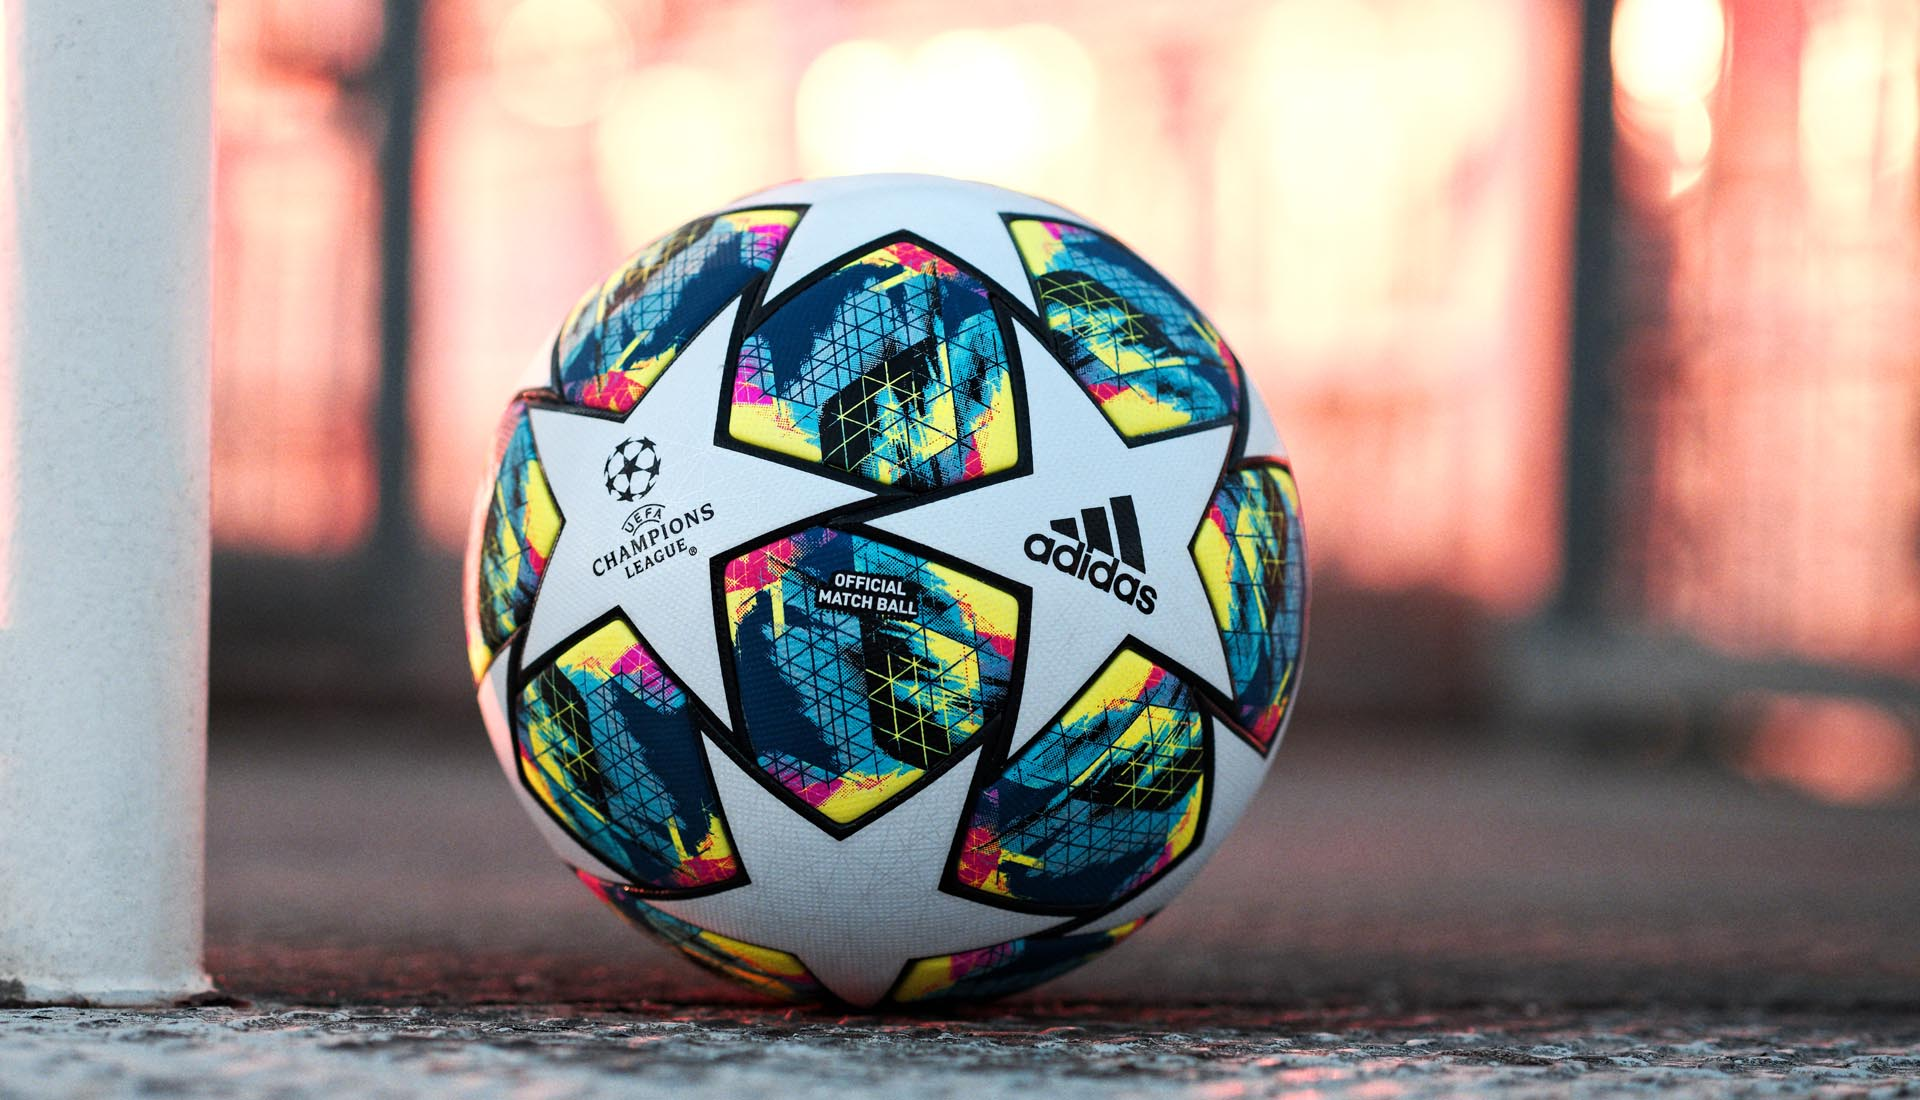 3059d41101d2 adidas Unveil The 2019/20 Champions League Match Ball - SoccerBible